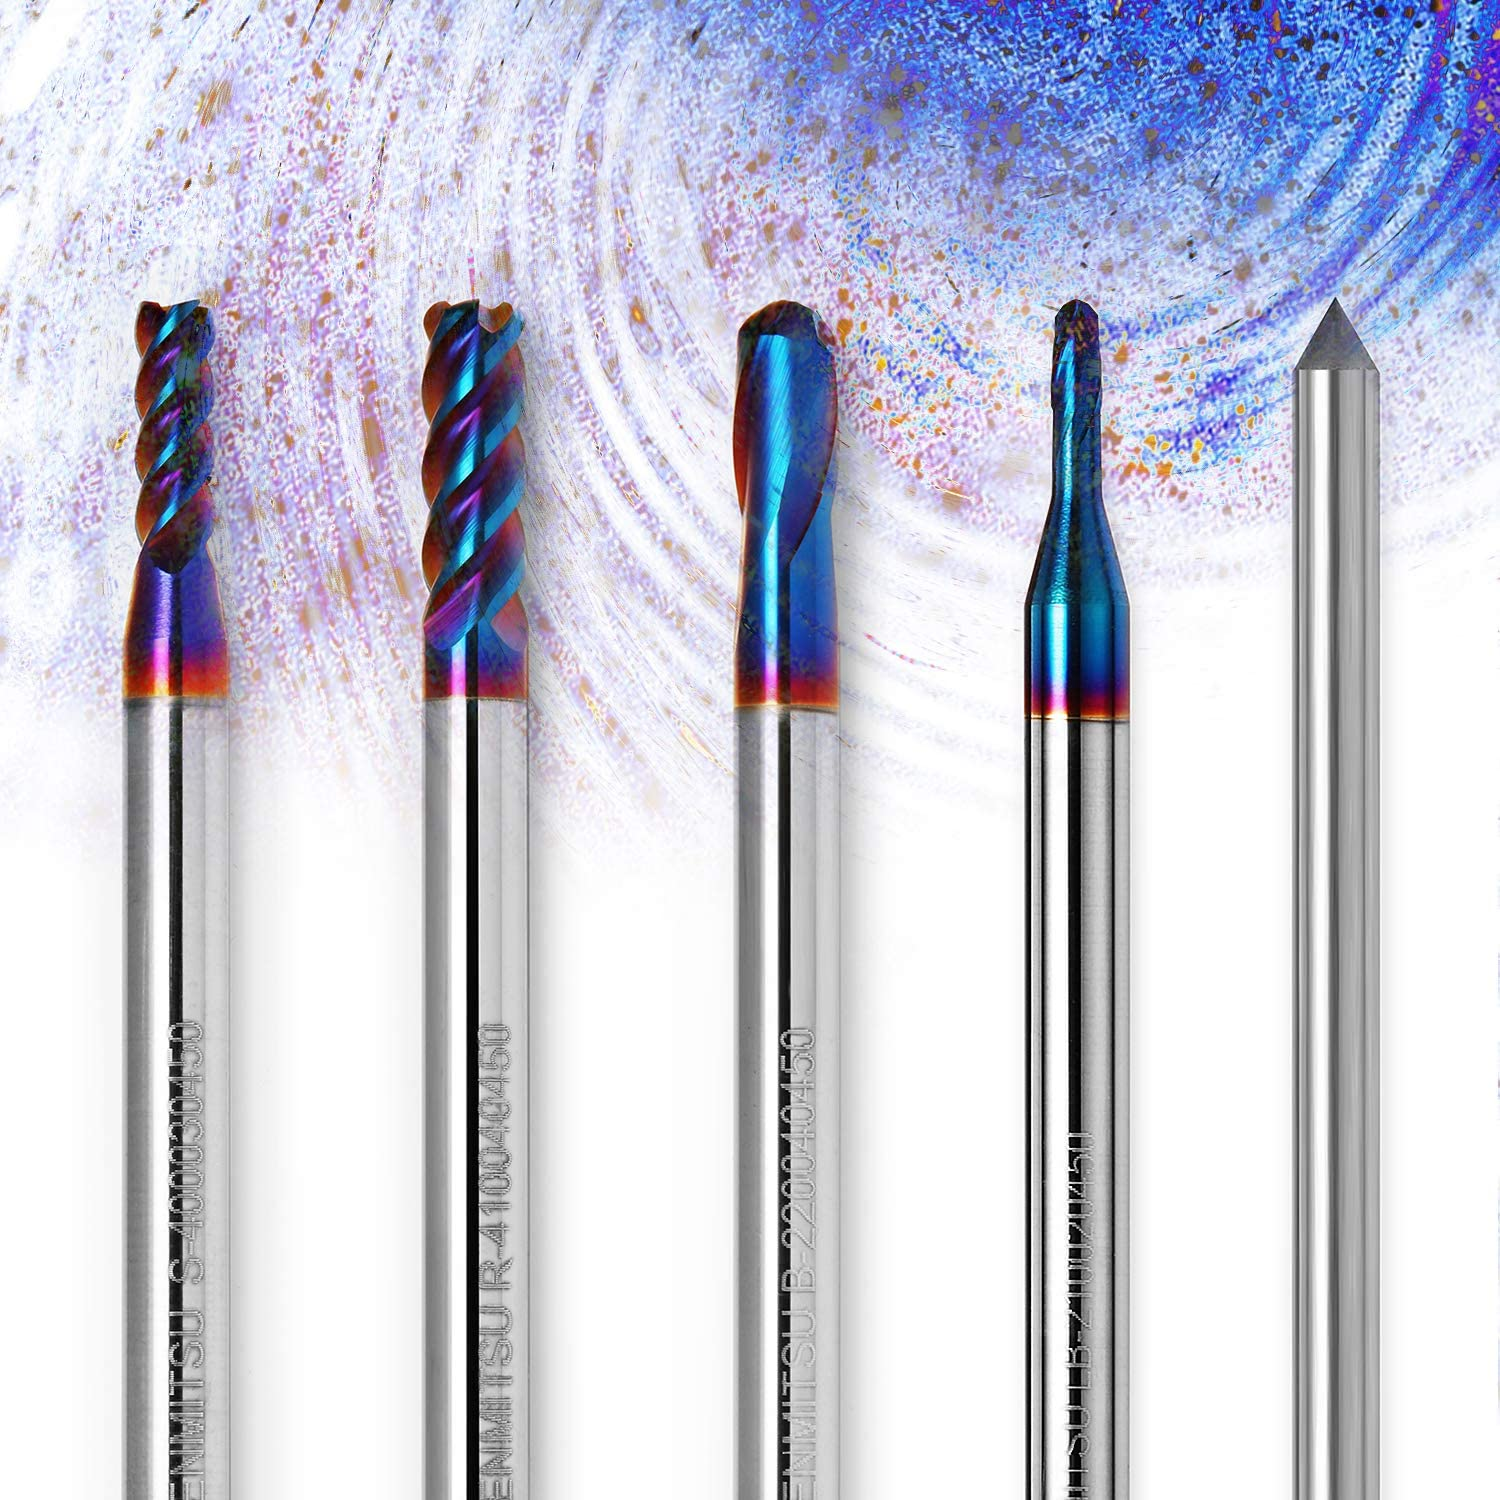 Genmitsu CNC Router Bits Square End Mill ideal for Wood Acrylic 4.0mm Cut Dia 4mm Shank 4 Flutes Plastic Solid Carbide Nano Blue Coat Tungsten Steel Aluminum Soft Metal Stainless Steel